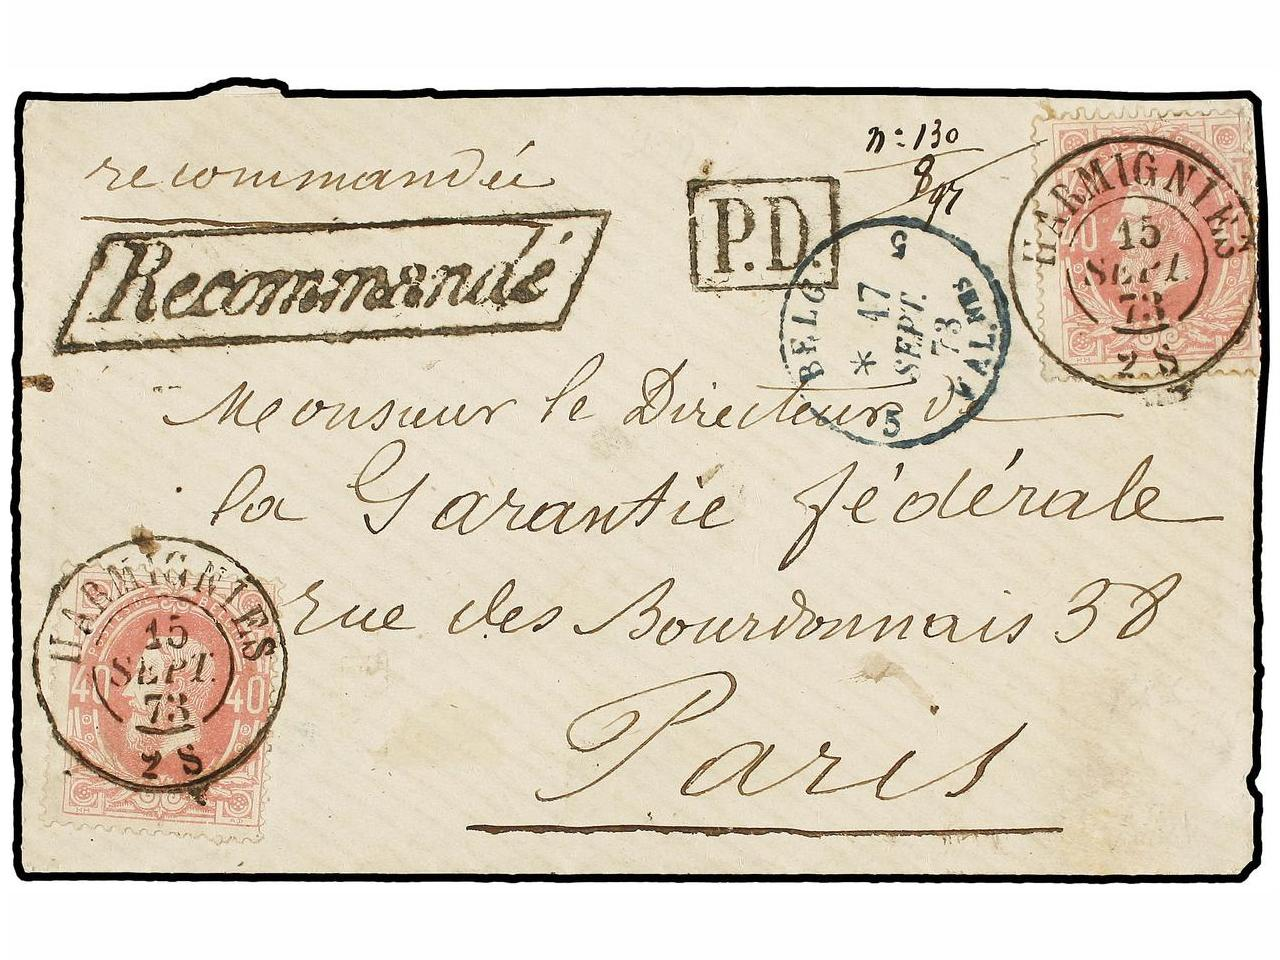 ✉ BELGICA. 1873. HARMIGNIES to FRANCE. Envelope franked with